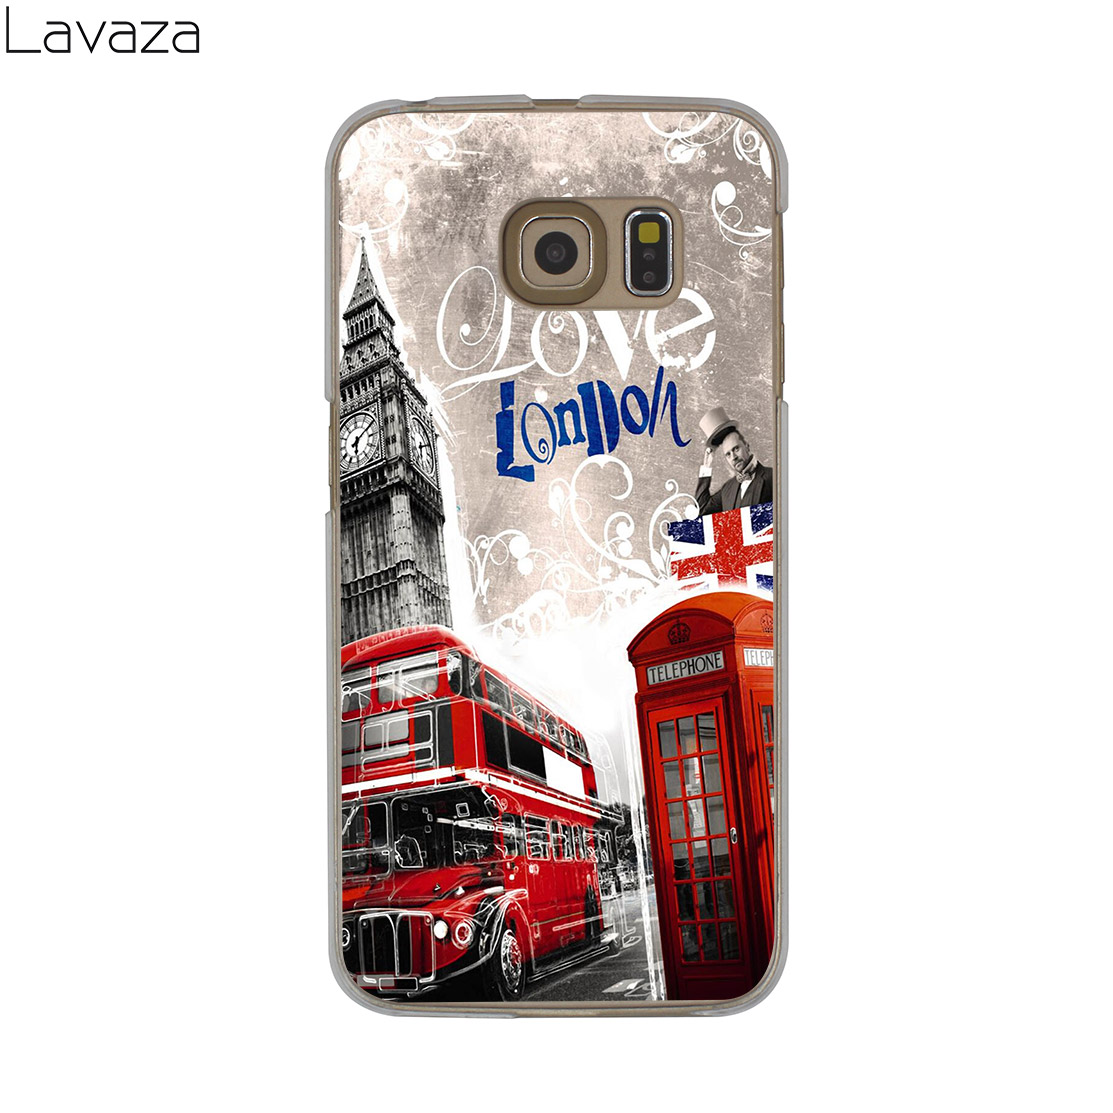 Lavaza Flag United Kingdom London Case for Samsung Galaxy S20 Ultra S10 Lite S10E S6 S7 Edge S8 S9 Plus A51 A71 A81 A91